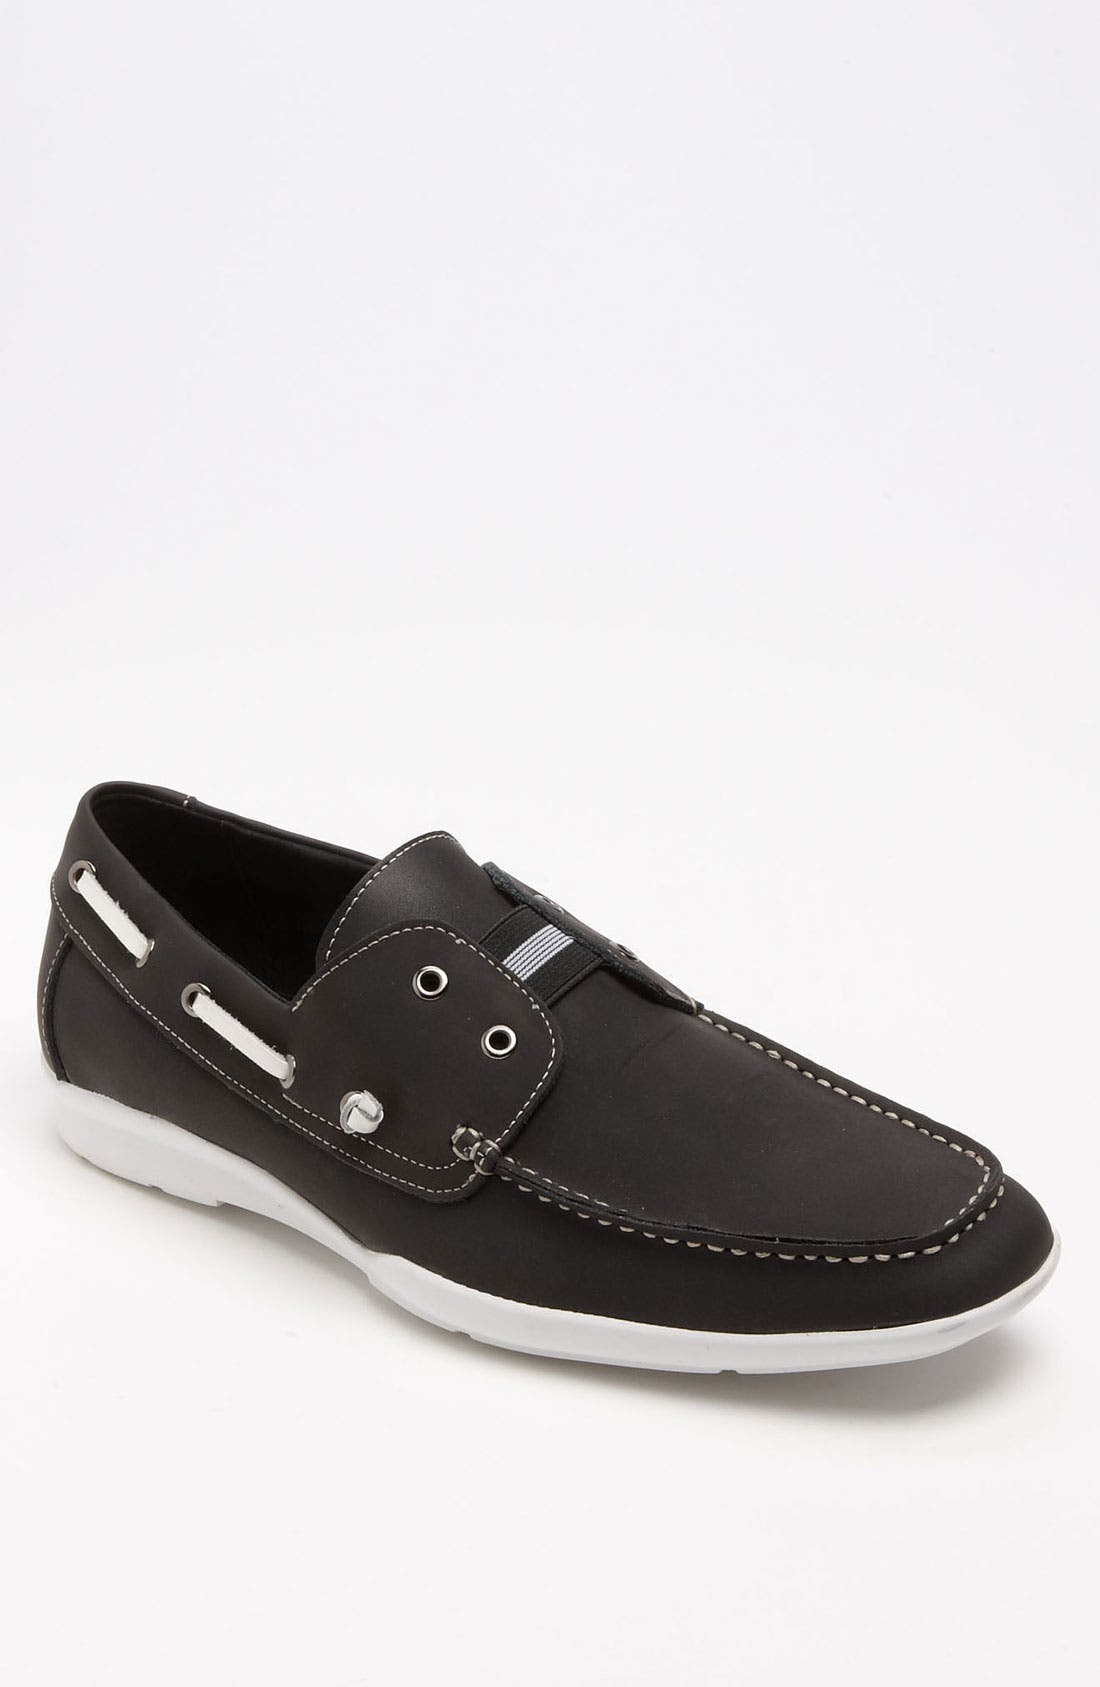 Alternate Image 1 Selected - J.D. Fisk 'Brave' Boat Shoe